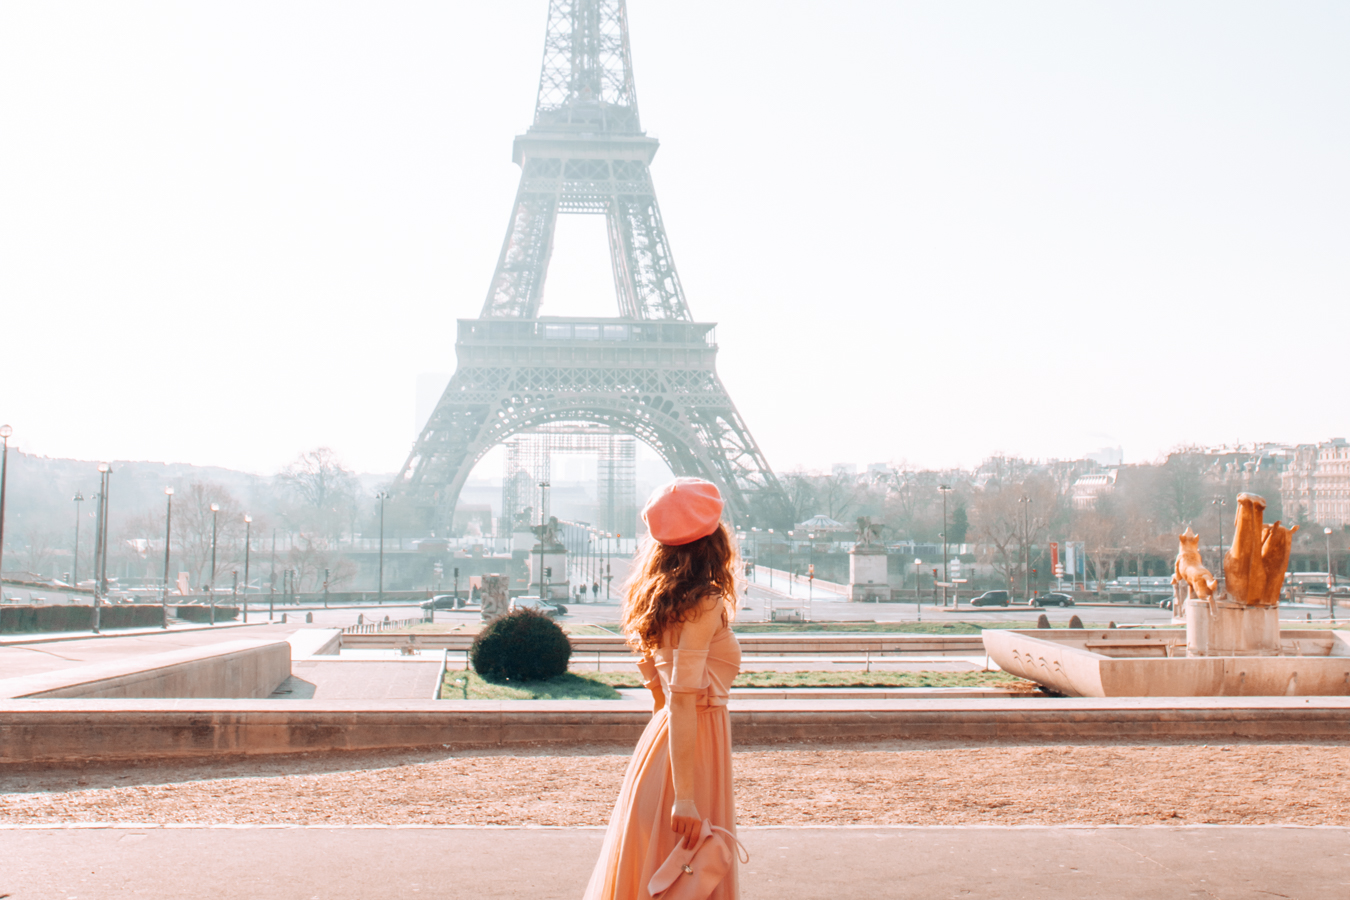 Girl in front of the Eiffel Tower